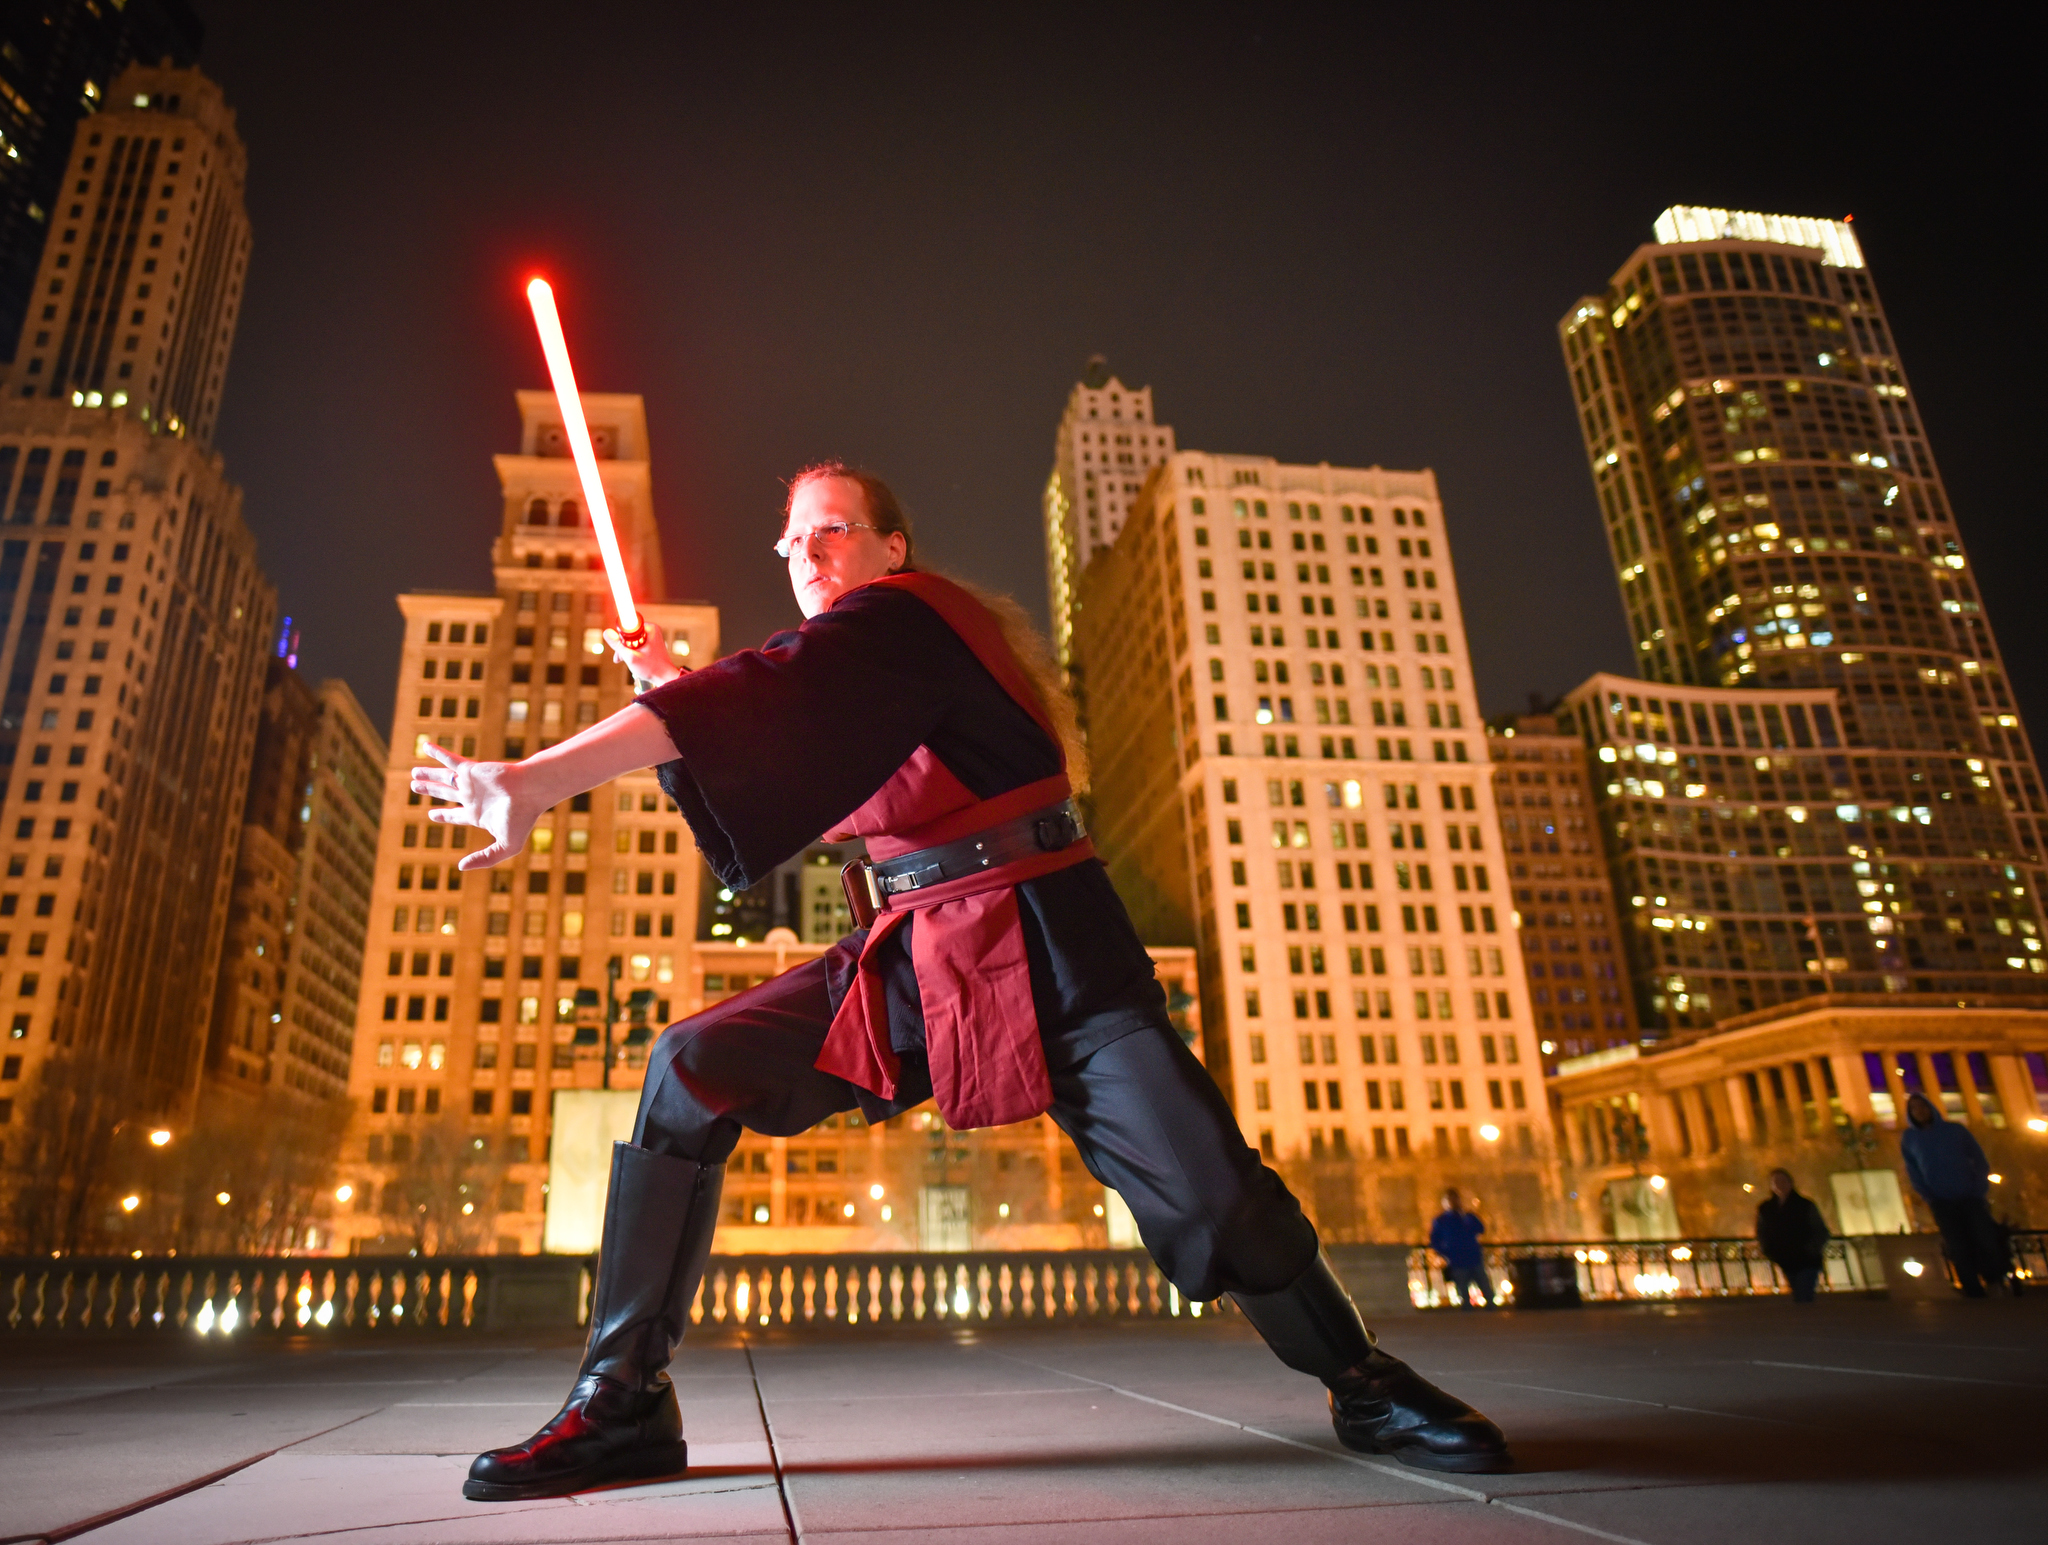 2019.04.14 - Star Wars Celebration Chicago 288864.JPG